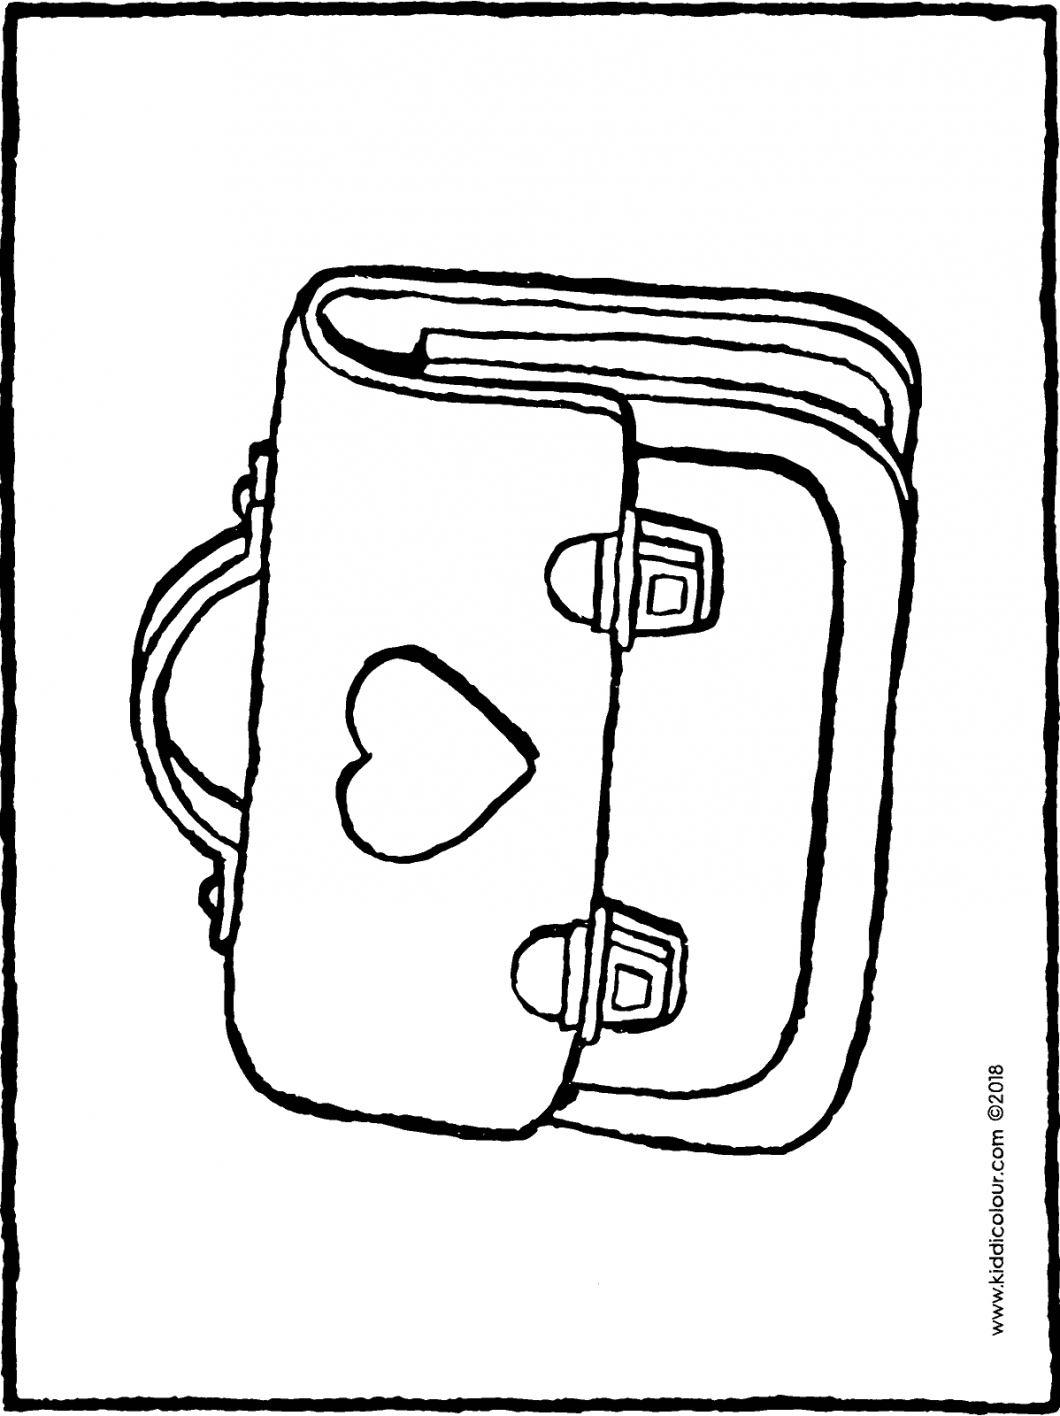 school bag colouring page drawing picture 01H